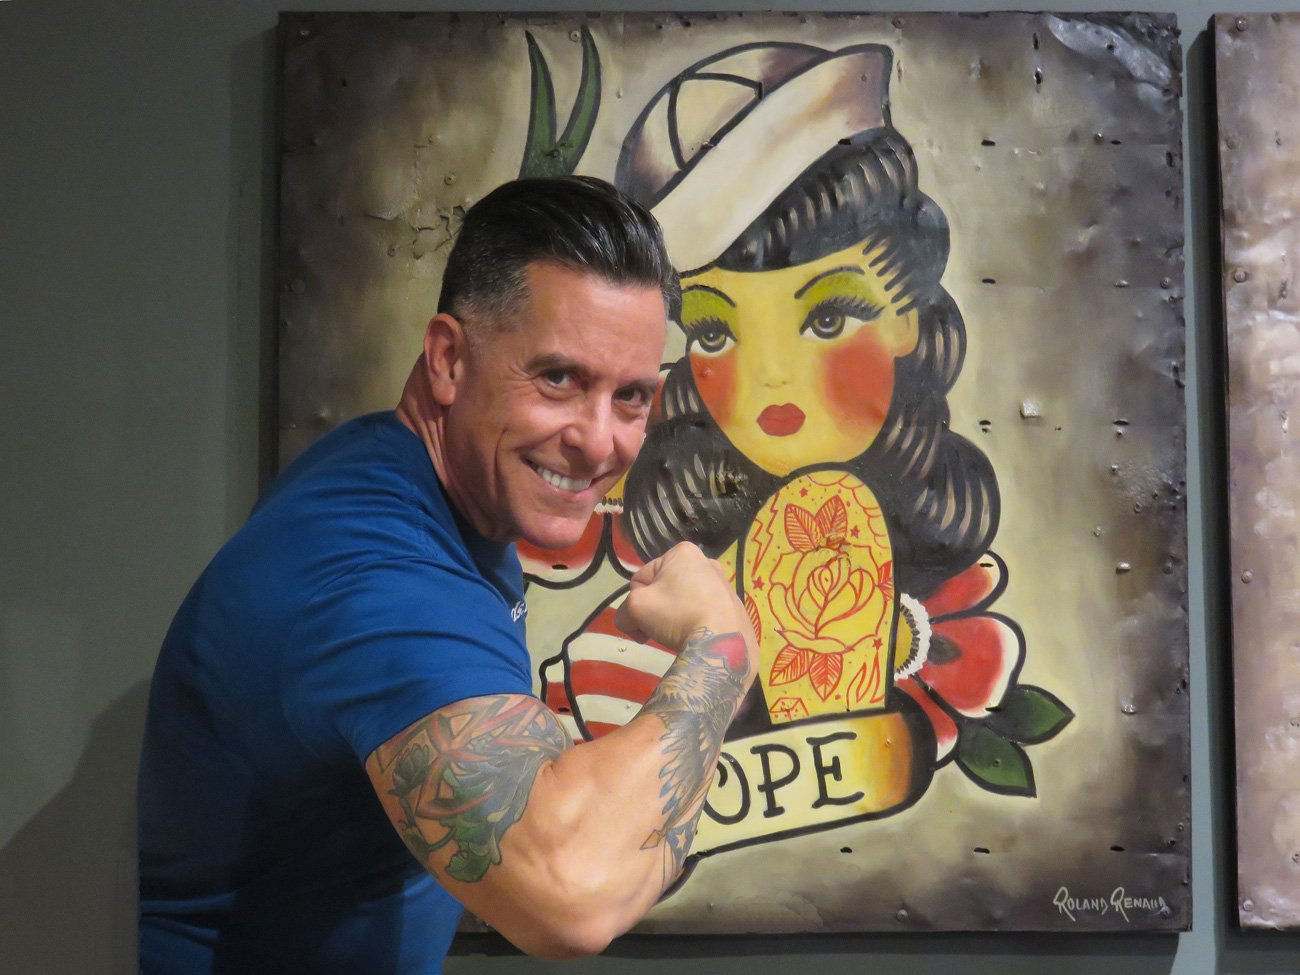 sailor hope tattoo painting